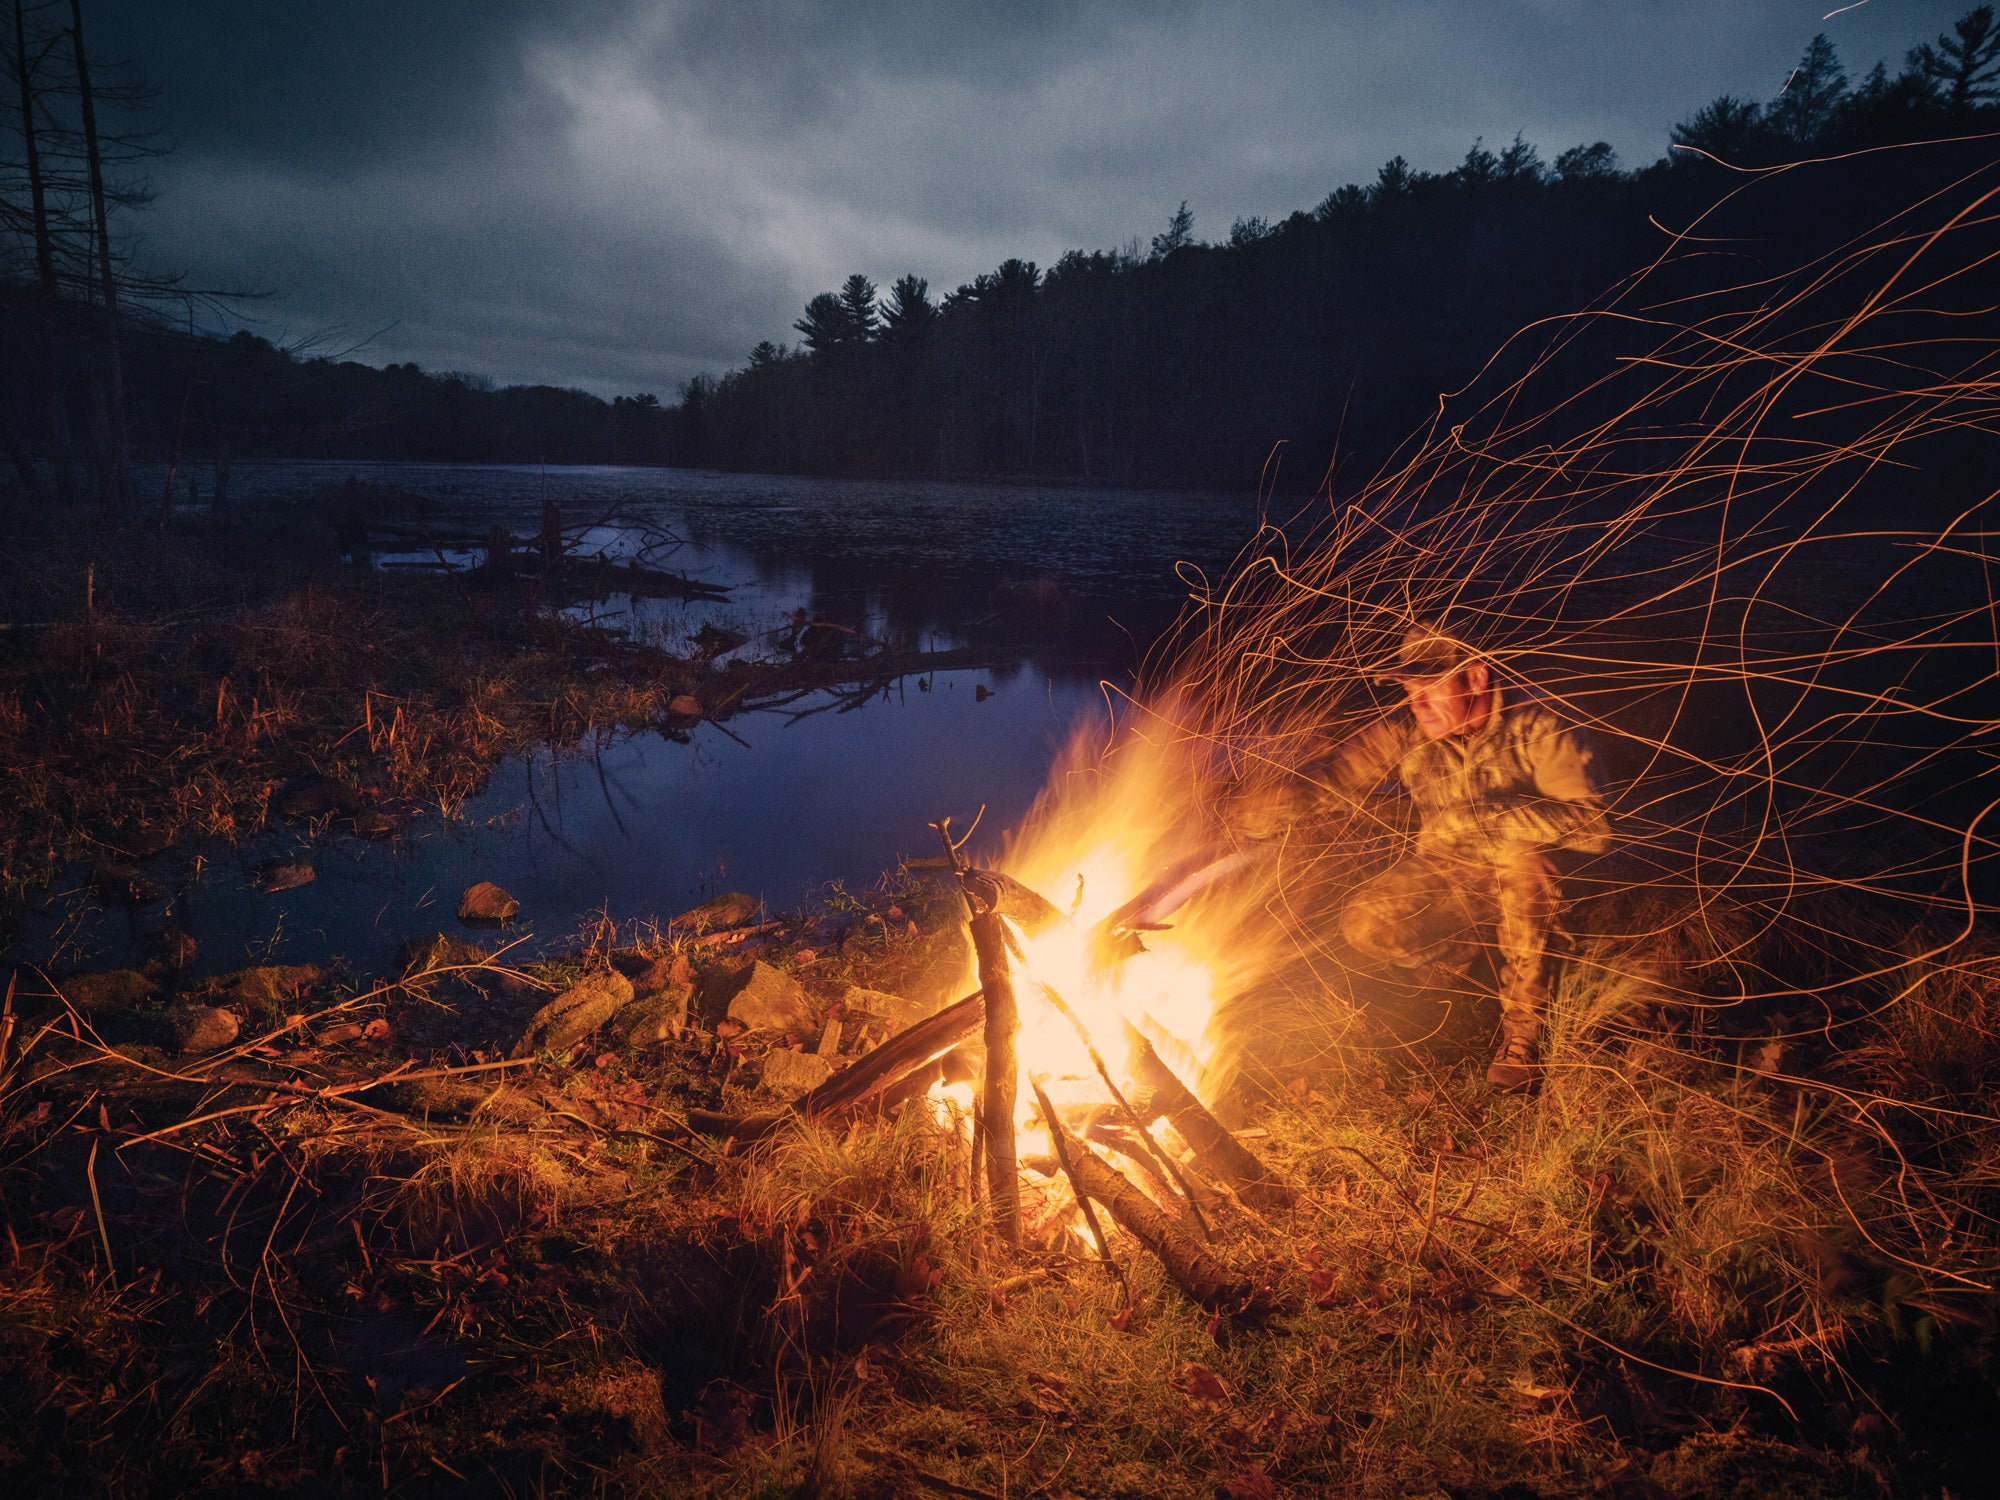 A man building a fire in the wilderness.